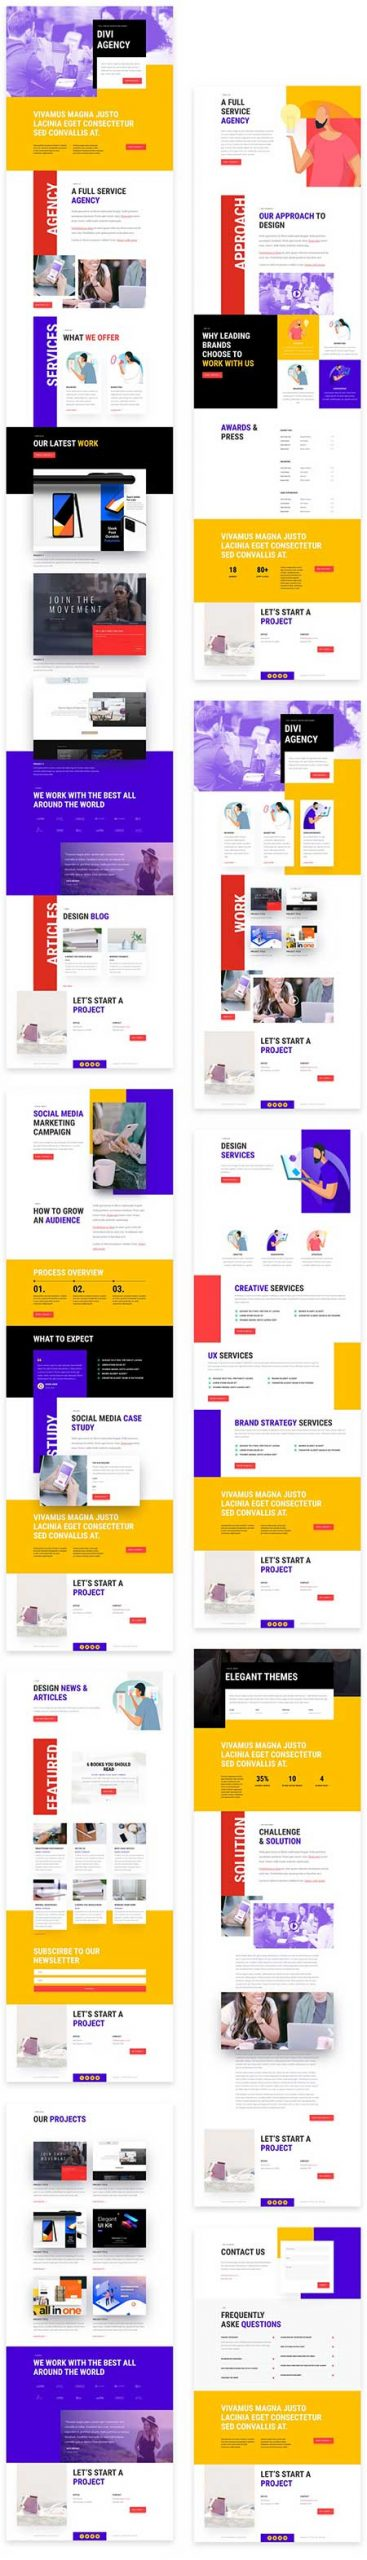 Divi advertising agency template